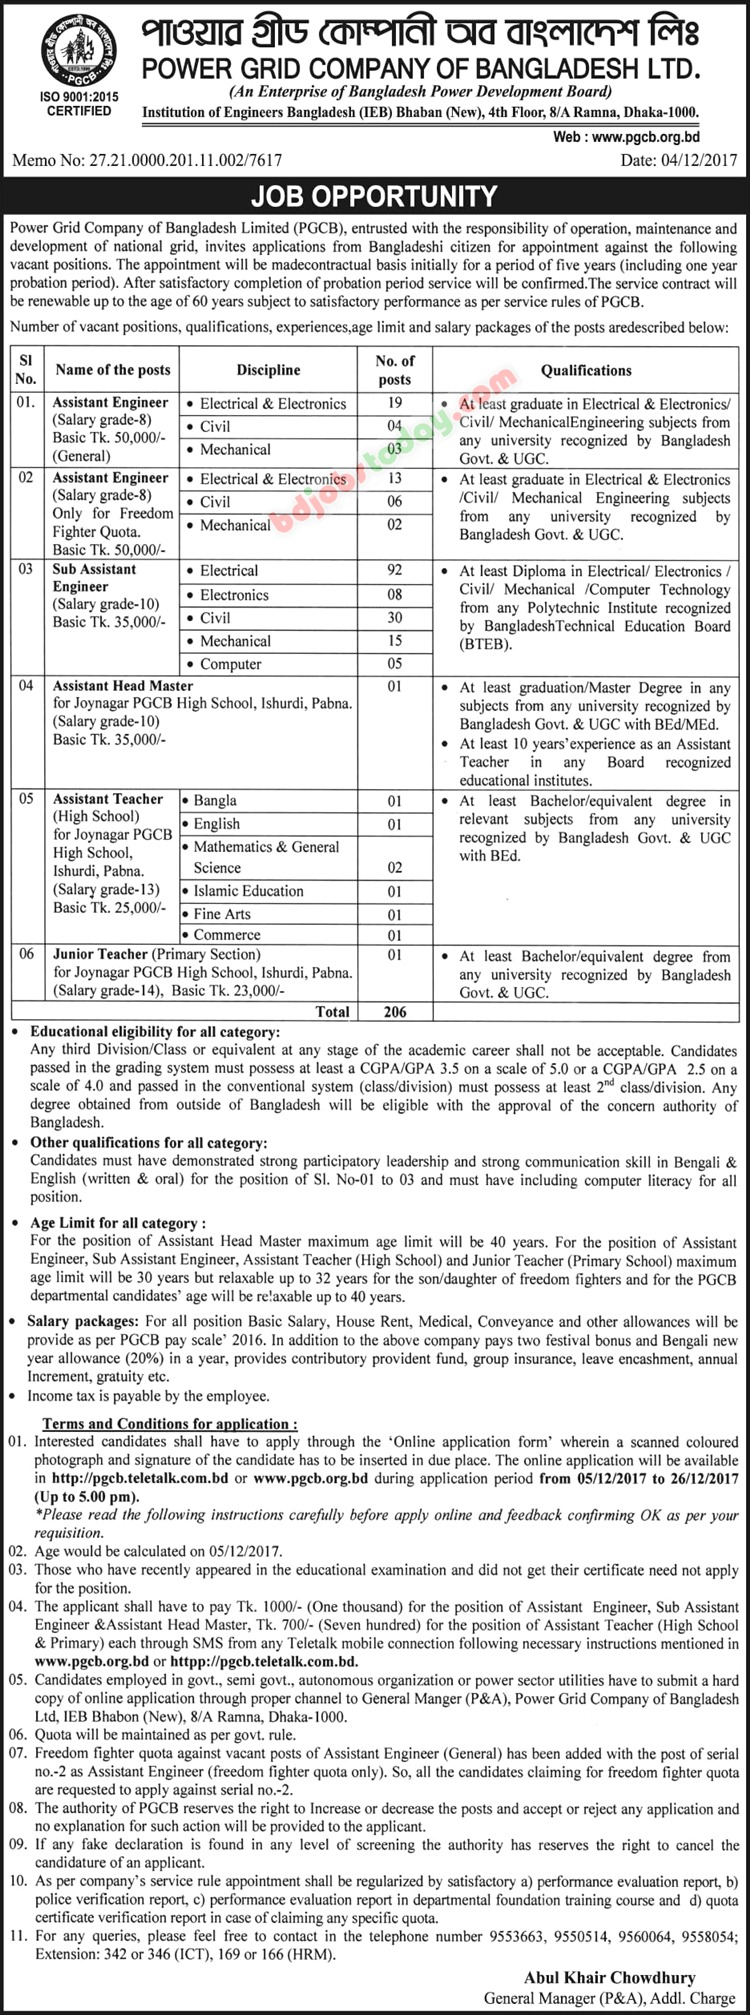 Power Grid Company Of Bangladesh Ltd jobs